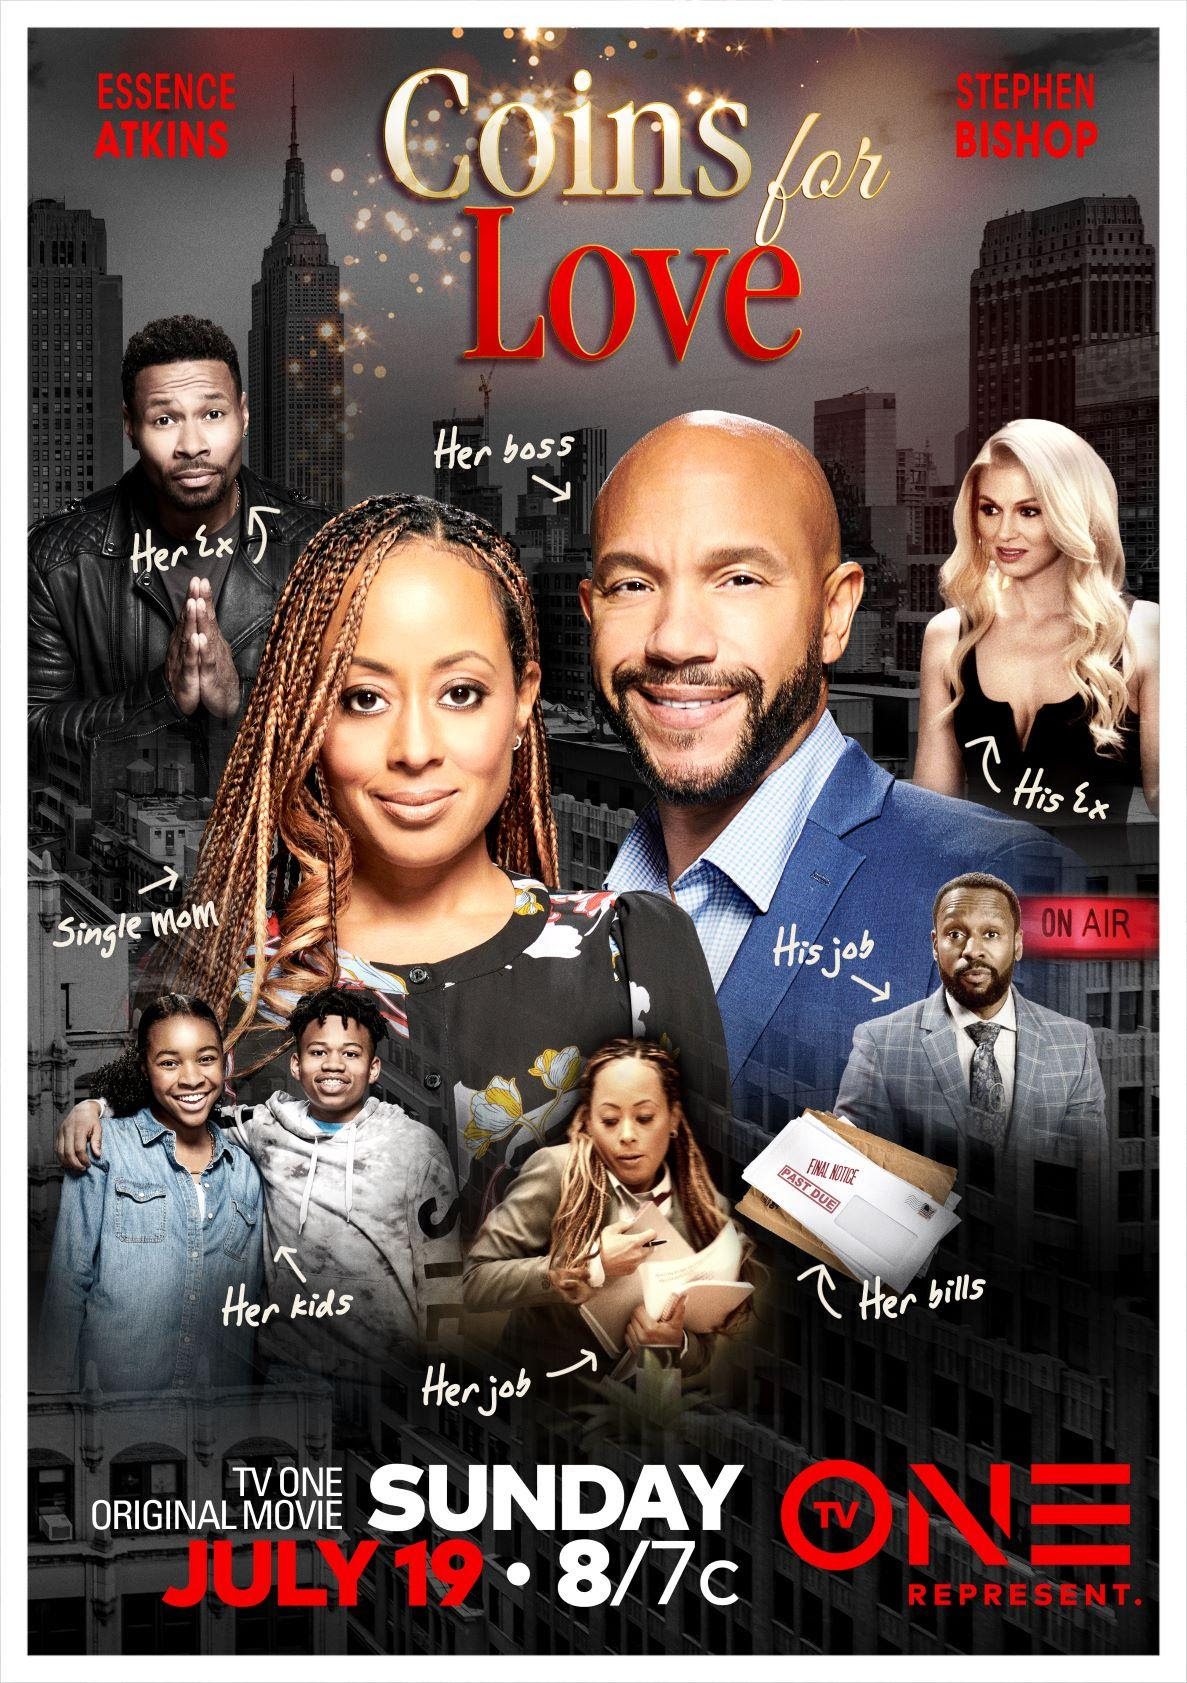 New Movie: Tv One's 'Coins For Love' Starring Essence Atkins & Stephen Bishop